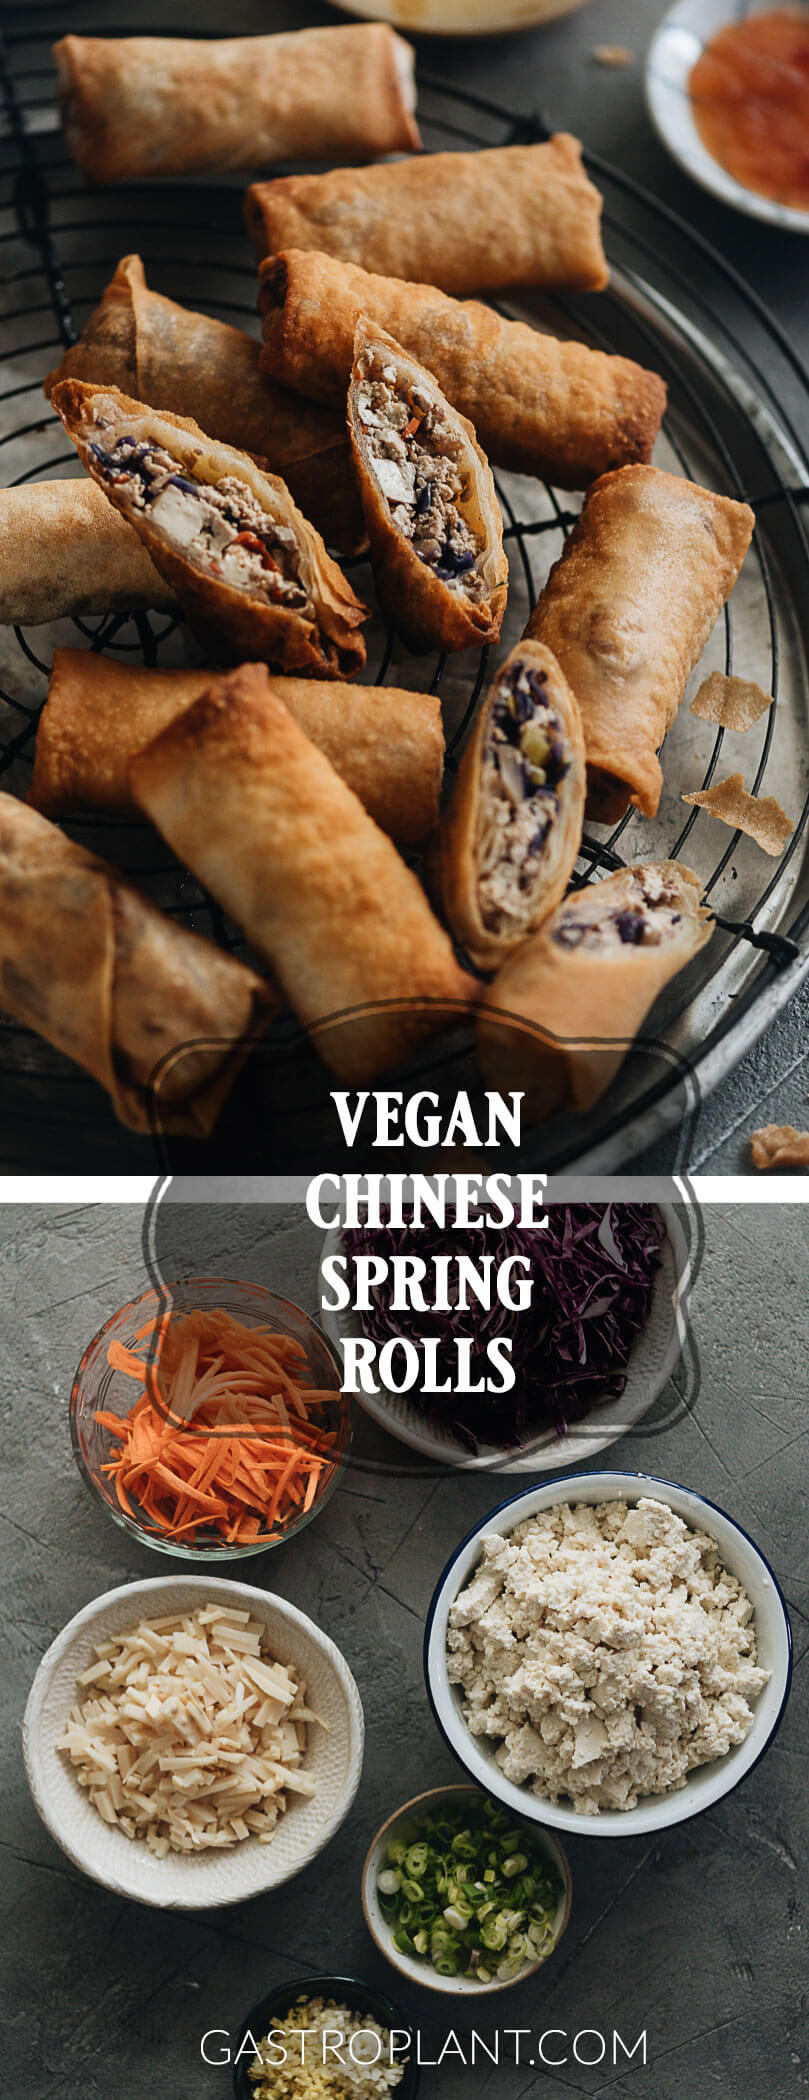 Vegan Chinese spring roll collage